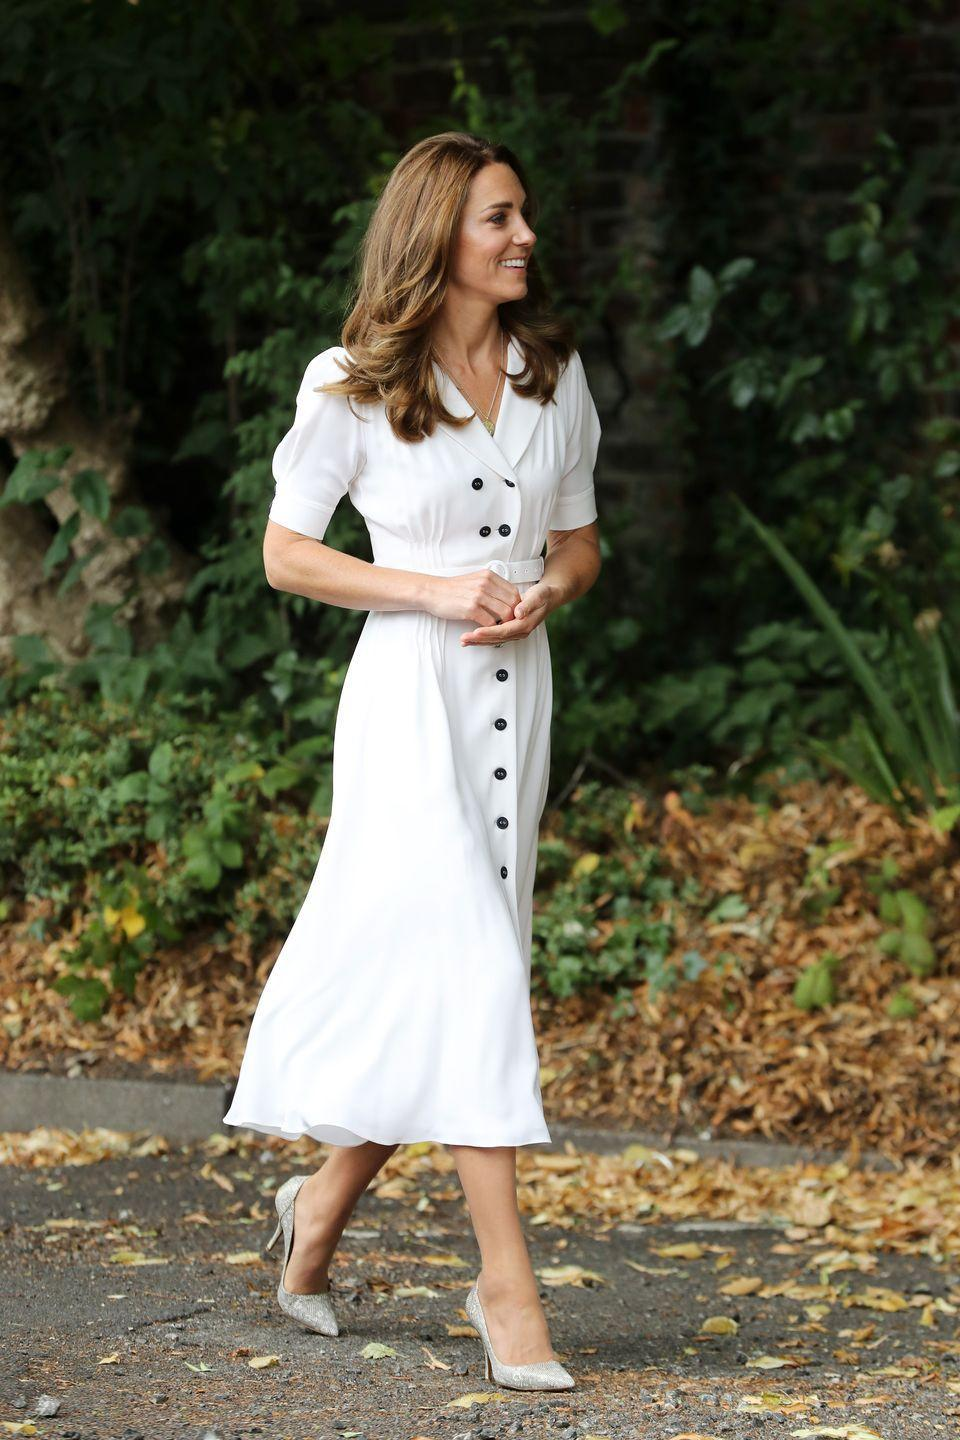 """<p>While visiting the charity, Baby Basic UK & Baby Basics Sheffield, Kate re-wore a crisp, white shirtdress by Suzannah, which she previously sported for <a href=""""https://www.townandcountrymag.com/society/tradition/a28258730/kate-middleton-white-dress-wimbledon-2019/"""" rel=""""nofollow noopener"""" target=""""_blank"""" data-ylk=""""slk:last year's Wimbledon match"""" class=""""link rapid-noclick-resp"""">last year's Wimbledon match</a>. When the Duchess entered the charity, she donned a <a href=""""https://www.townandcountrymag.com/society/tradition/g32616136/queen-elizabeth-princess-charlotte-royal-family-liberty-of-london-print-photos/"""" rel=""""nofollow noopener"""" target=""""_blank"""" data-ylk=""""slk:liberty print"""" class=""""link rapid-noclick-resp"""">liberty print</a> face mask. </p>"""